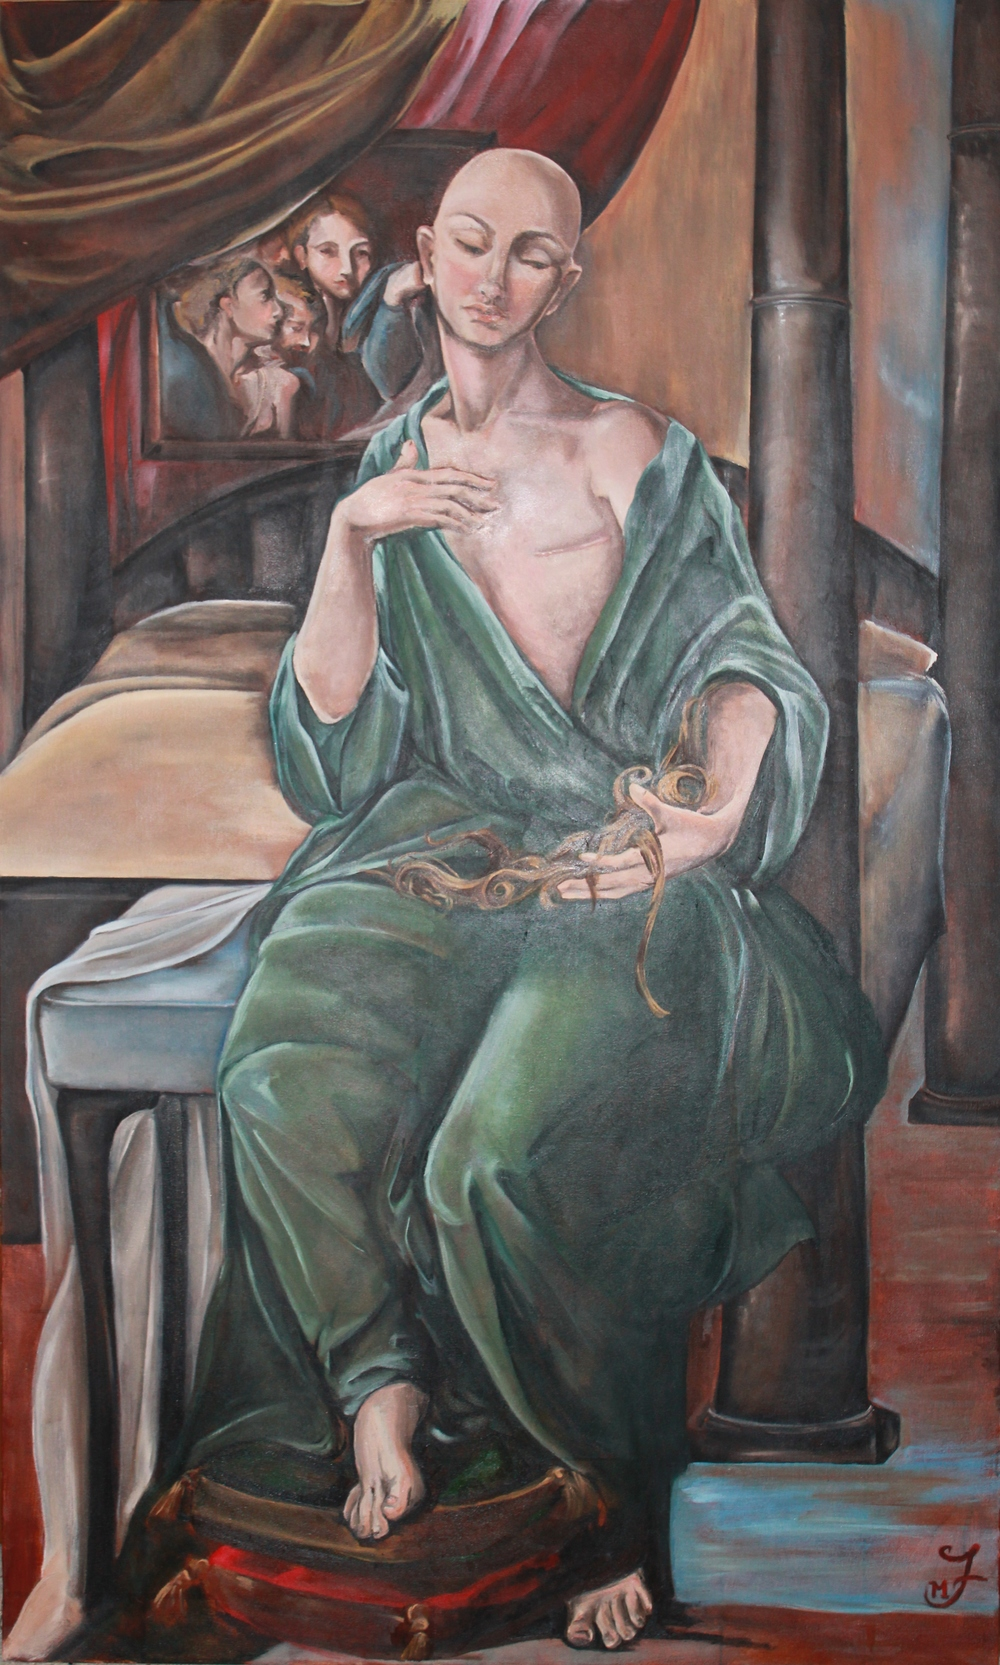 Woman with the Long Neck (2011)